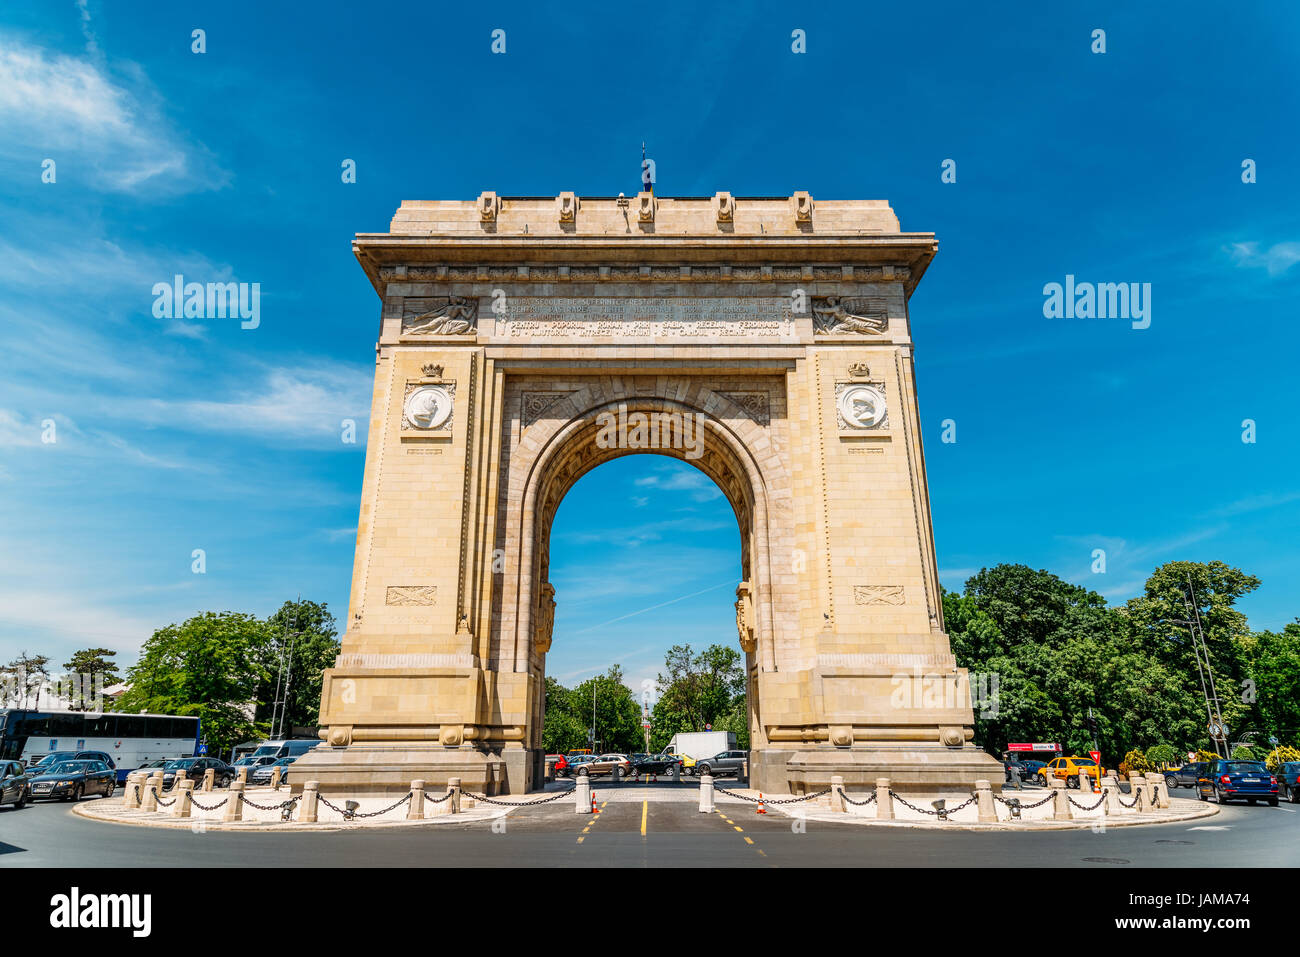 BUCHAREST, ROMANIA - MAY 24, 2017: Built in 1936 Arcul de Triumf is a triumphal arch located in the northern part Stock Photo